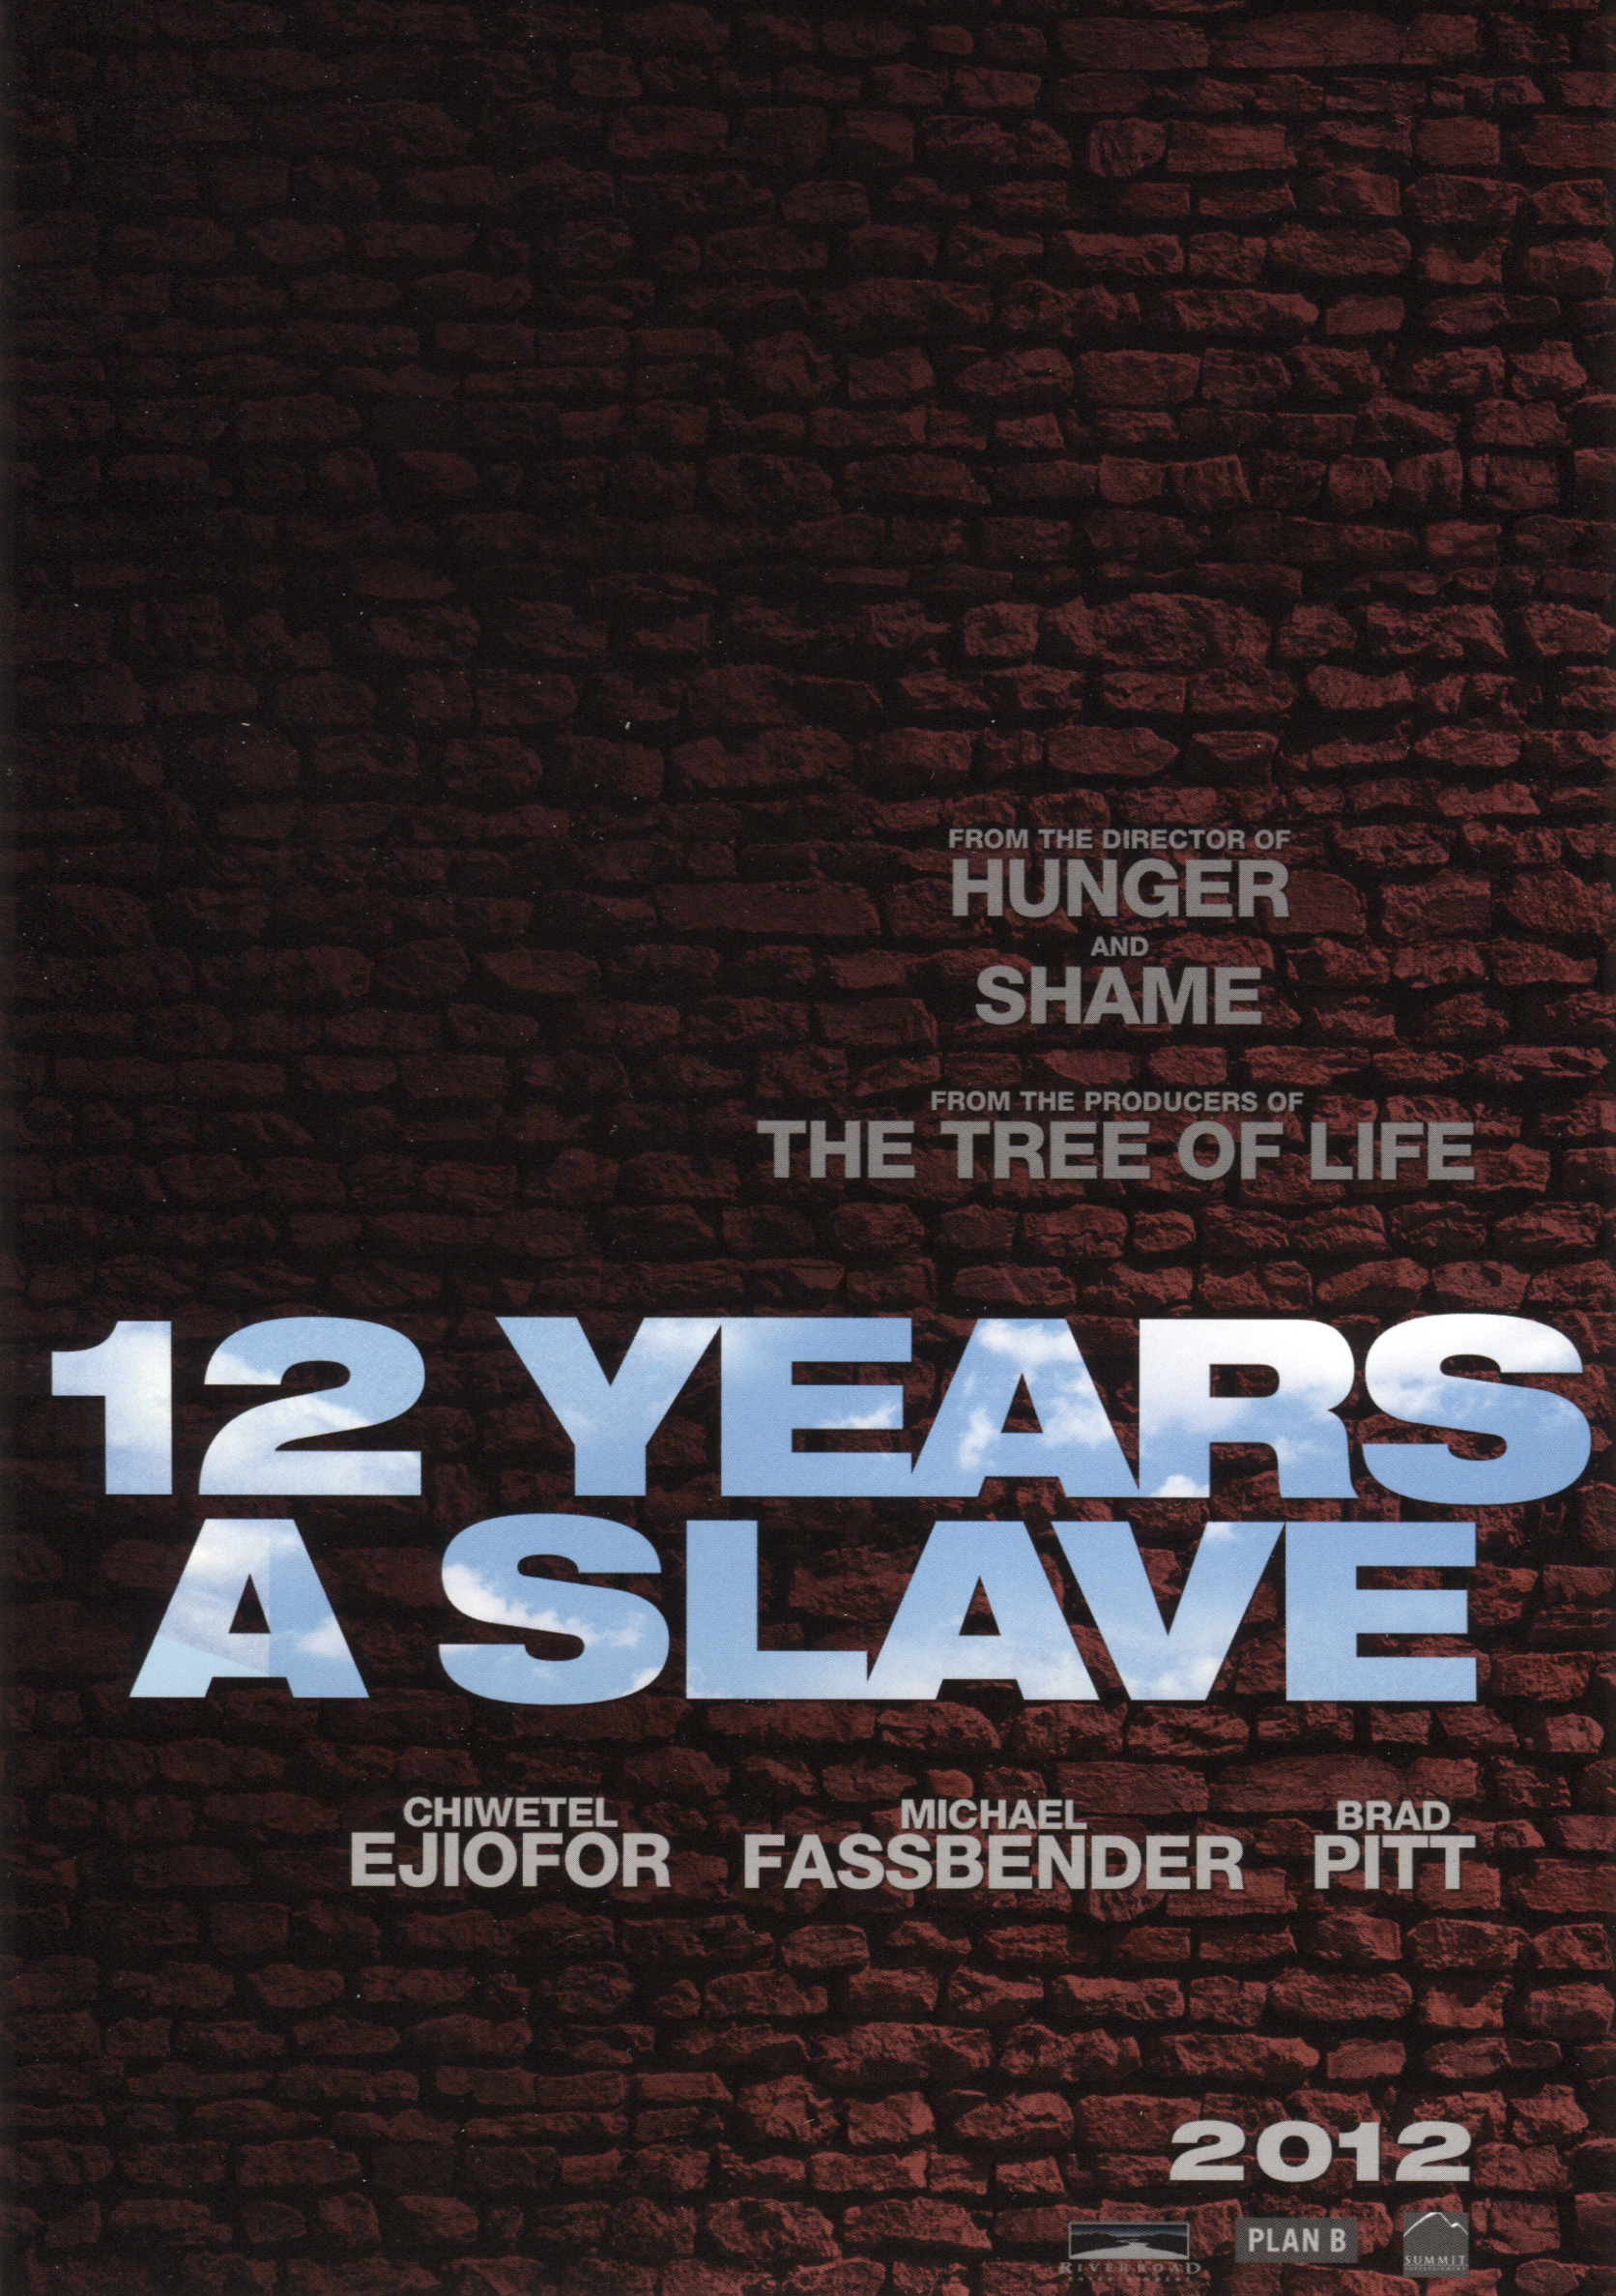 First Synopsis and Promo Poster for 12 YEARS A SLAVE Starring Brad